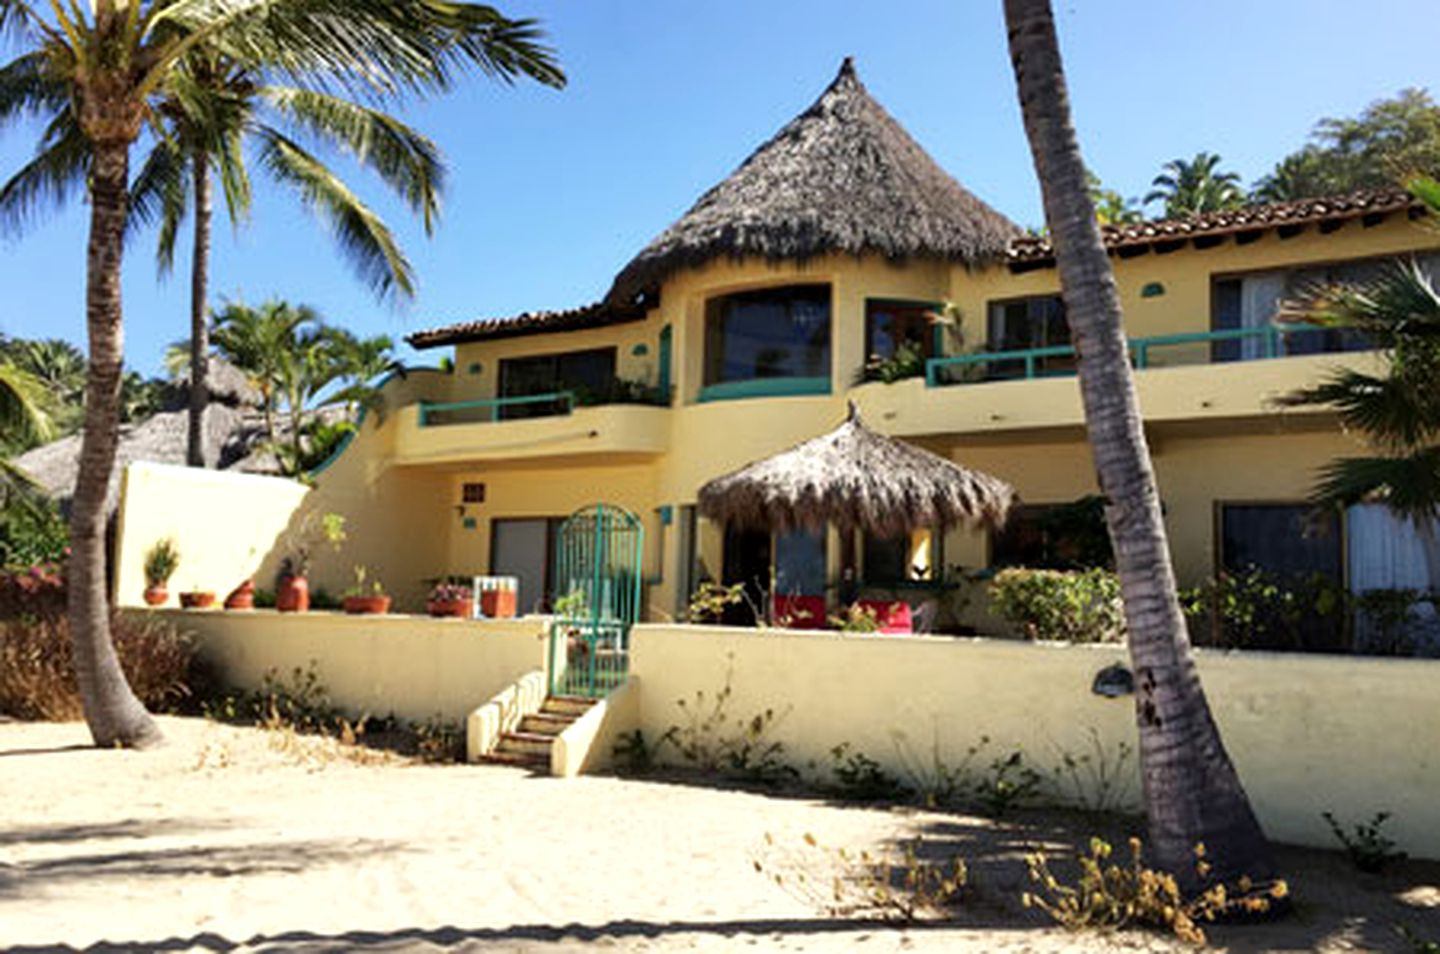 Beach Houses (San Francisco, Nayarit, Mexico)